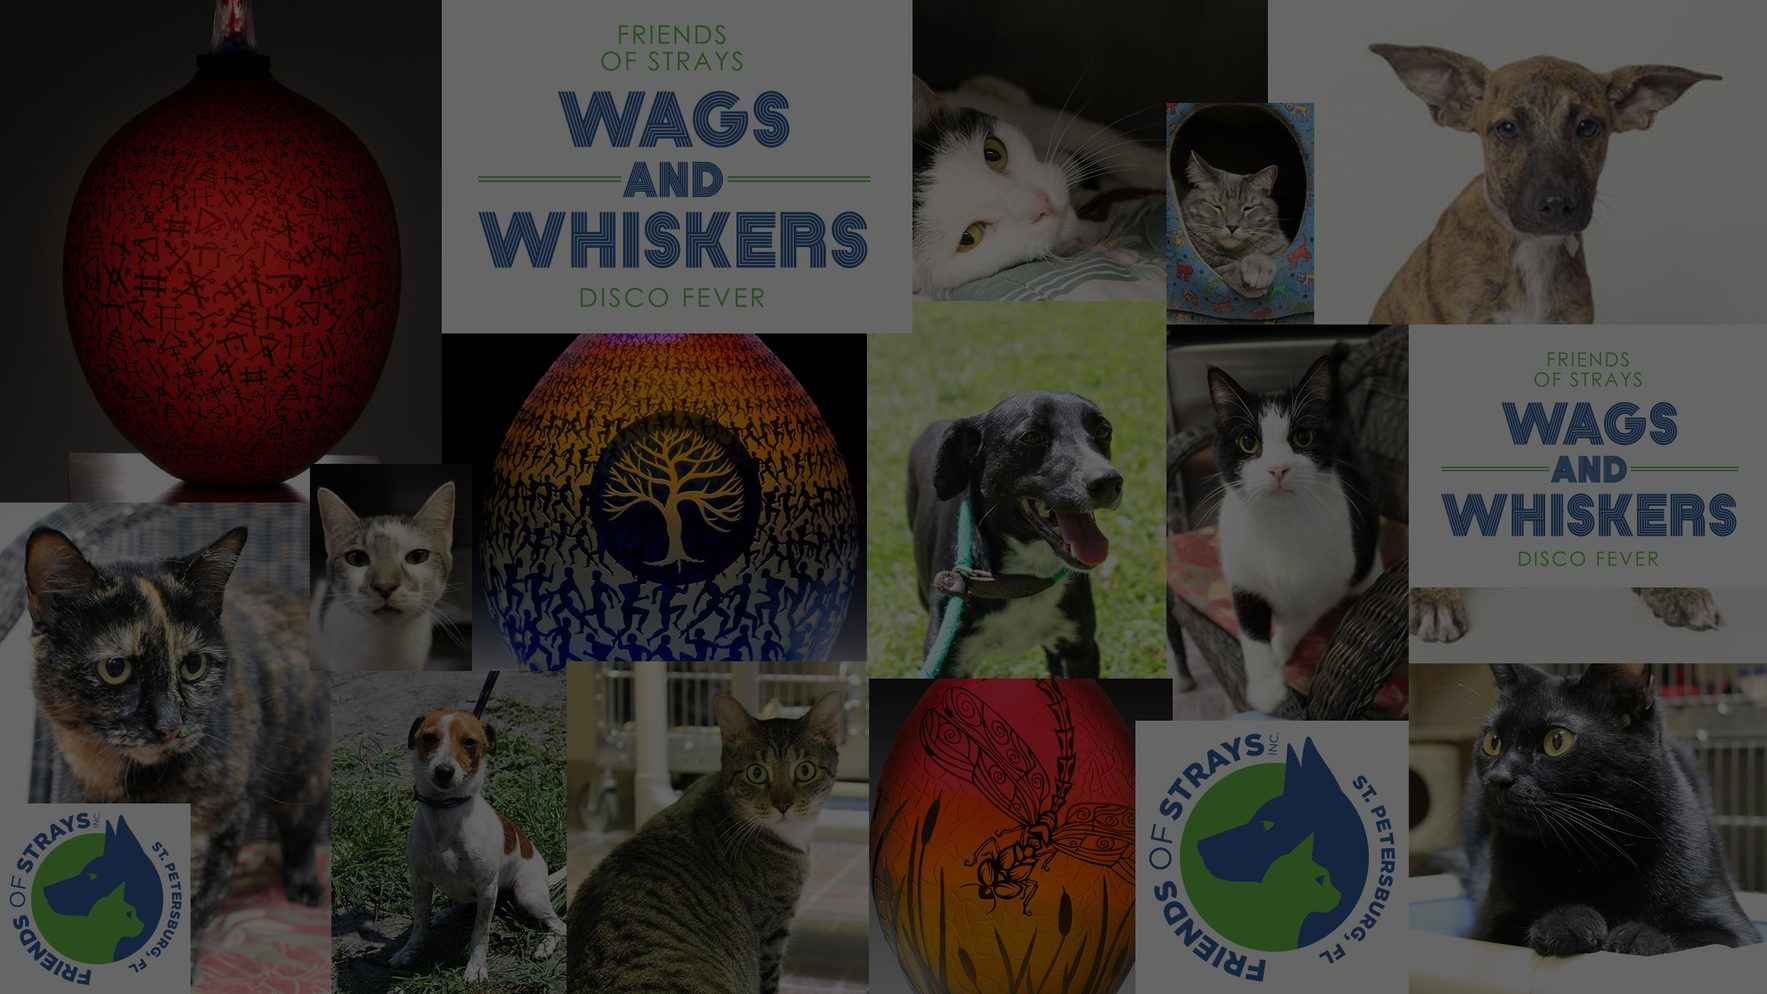 Wags and Whiskers: Disco Fever image